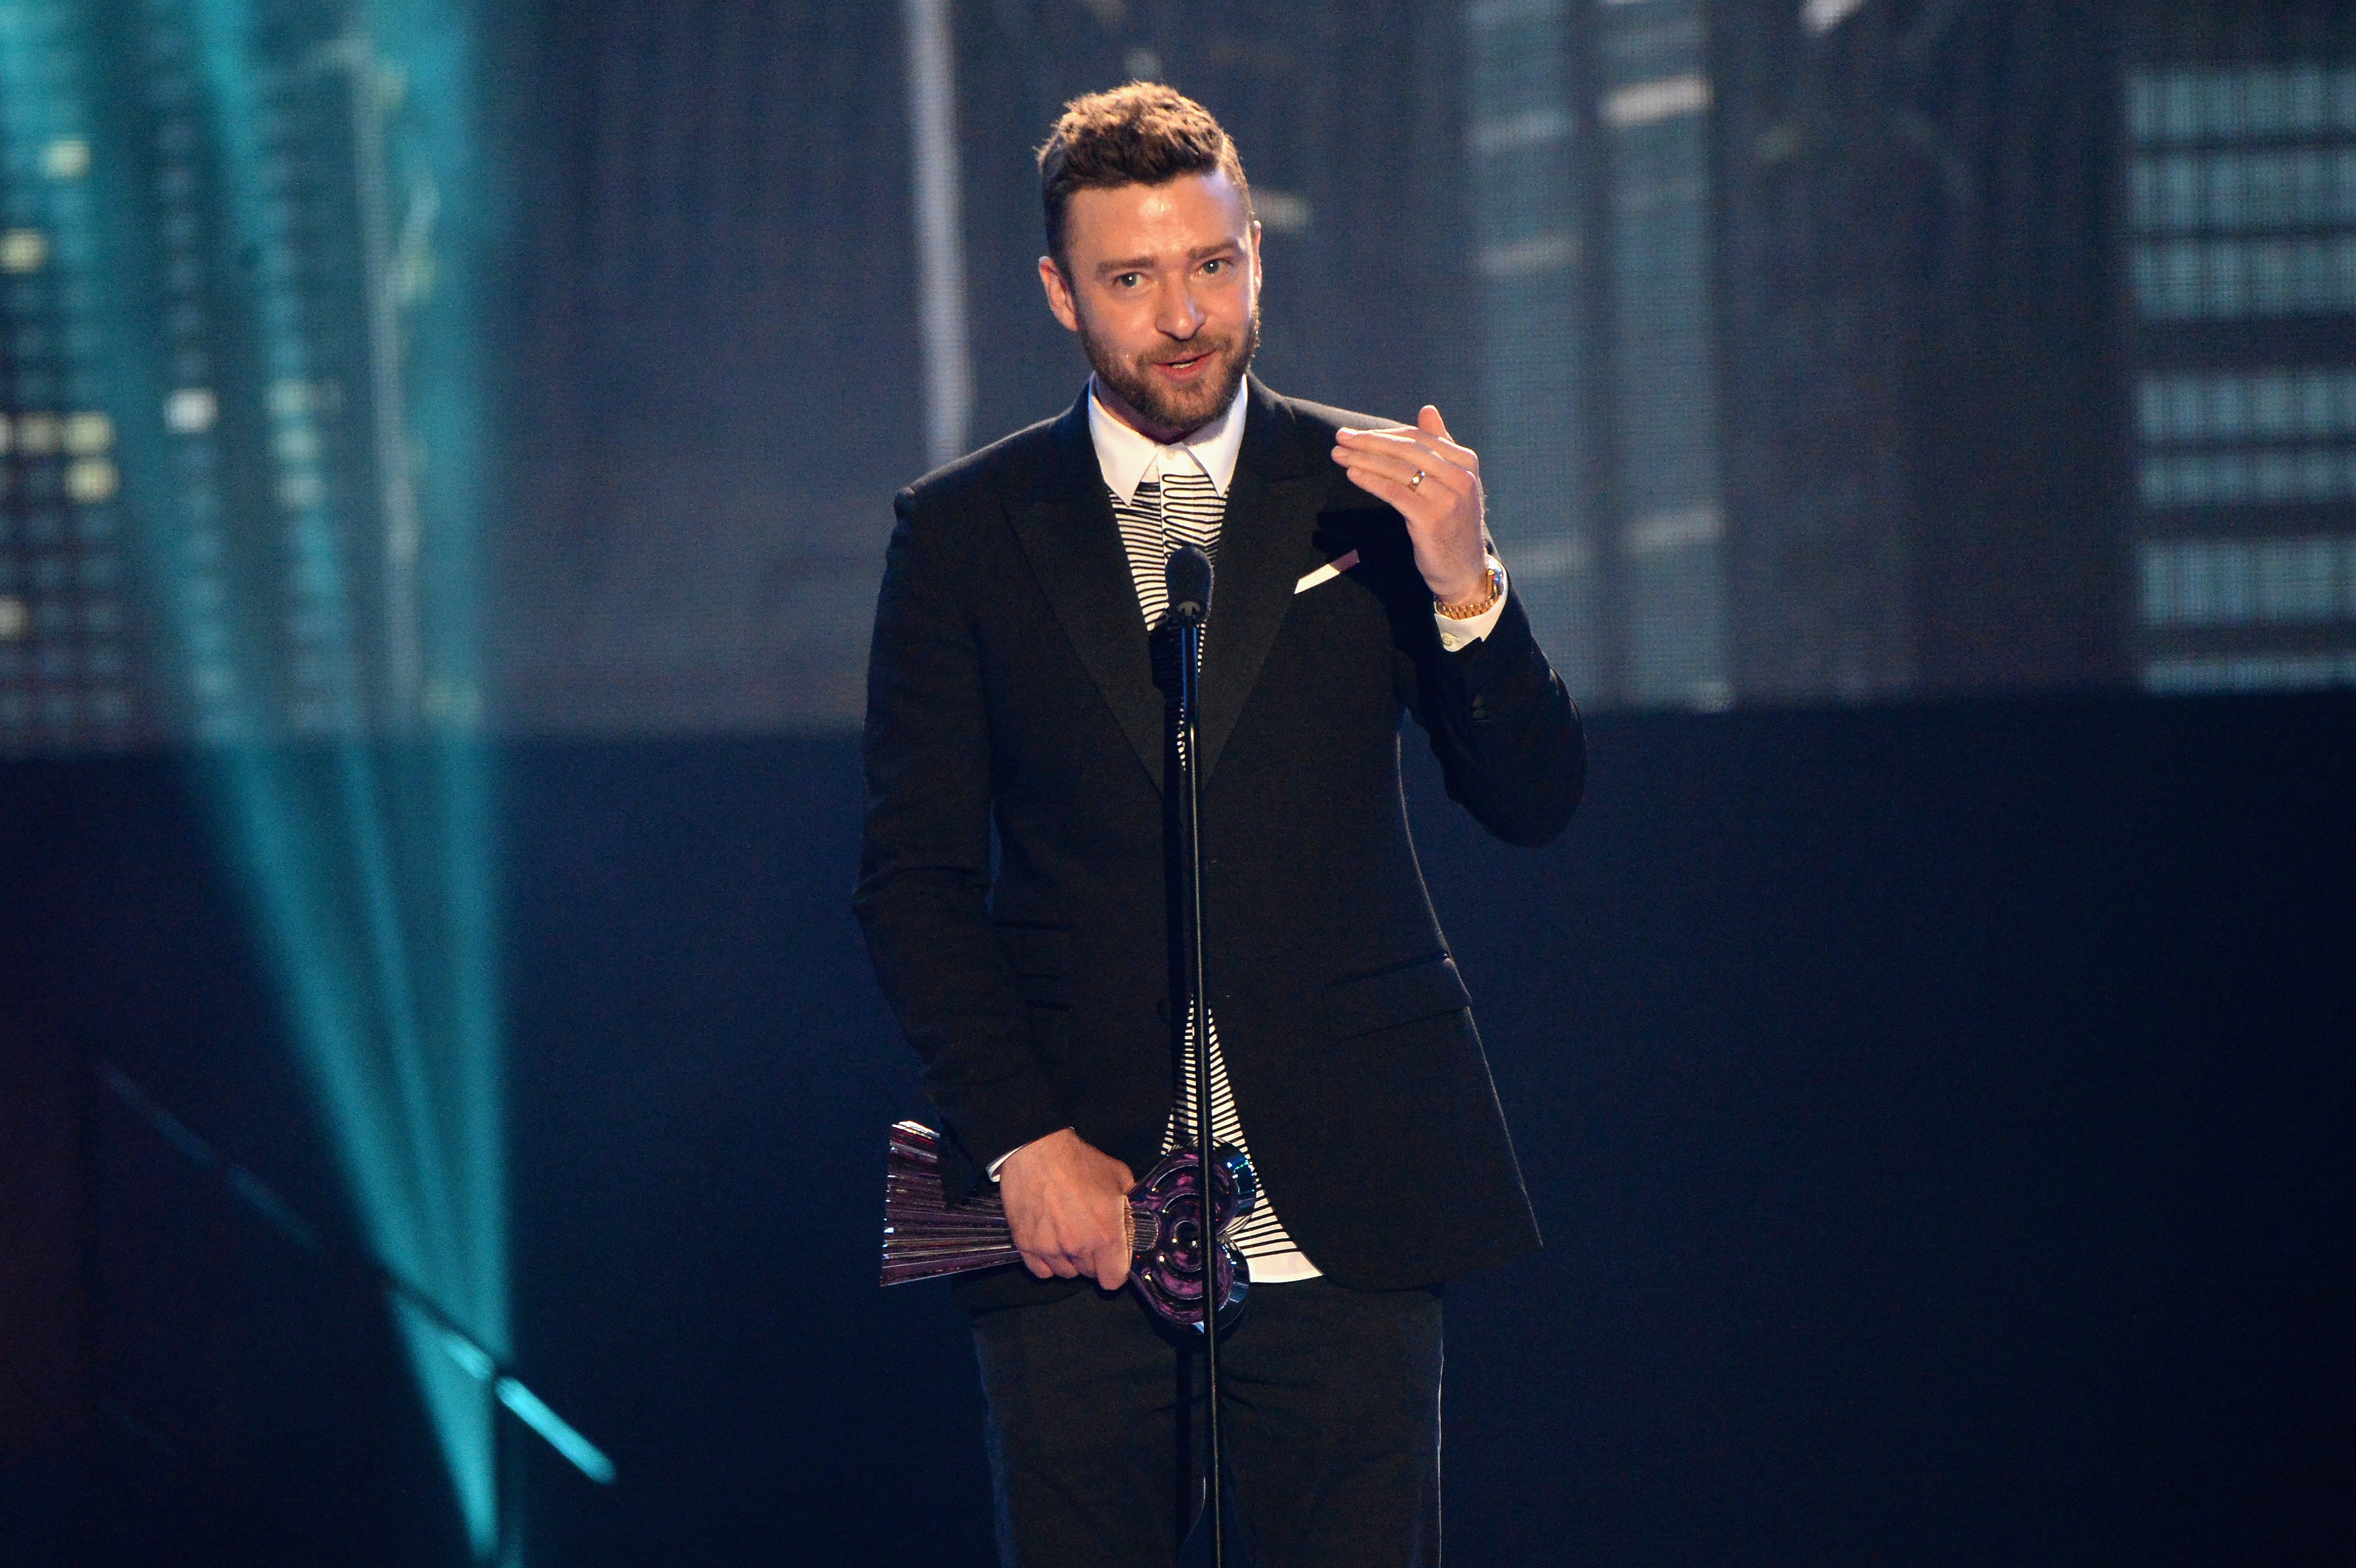 INGLEWOOD, CALIFORNIA - APRIL 03:  Singer Justin Timberlake performs onstage at the iHeartRadio Music Awards in Inglewood, California.  (Photo by Kevin Mazur/Getty Images for iHeartRadio / Turner)